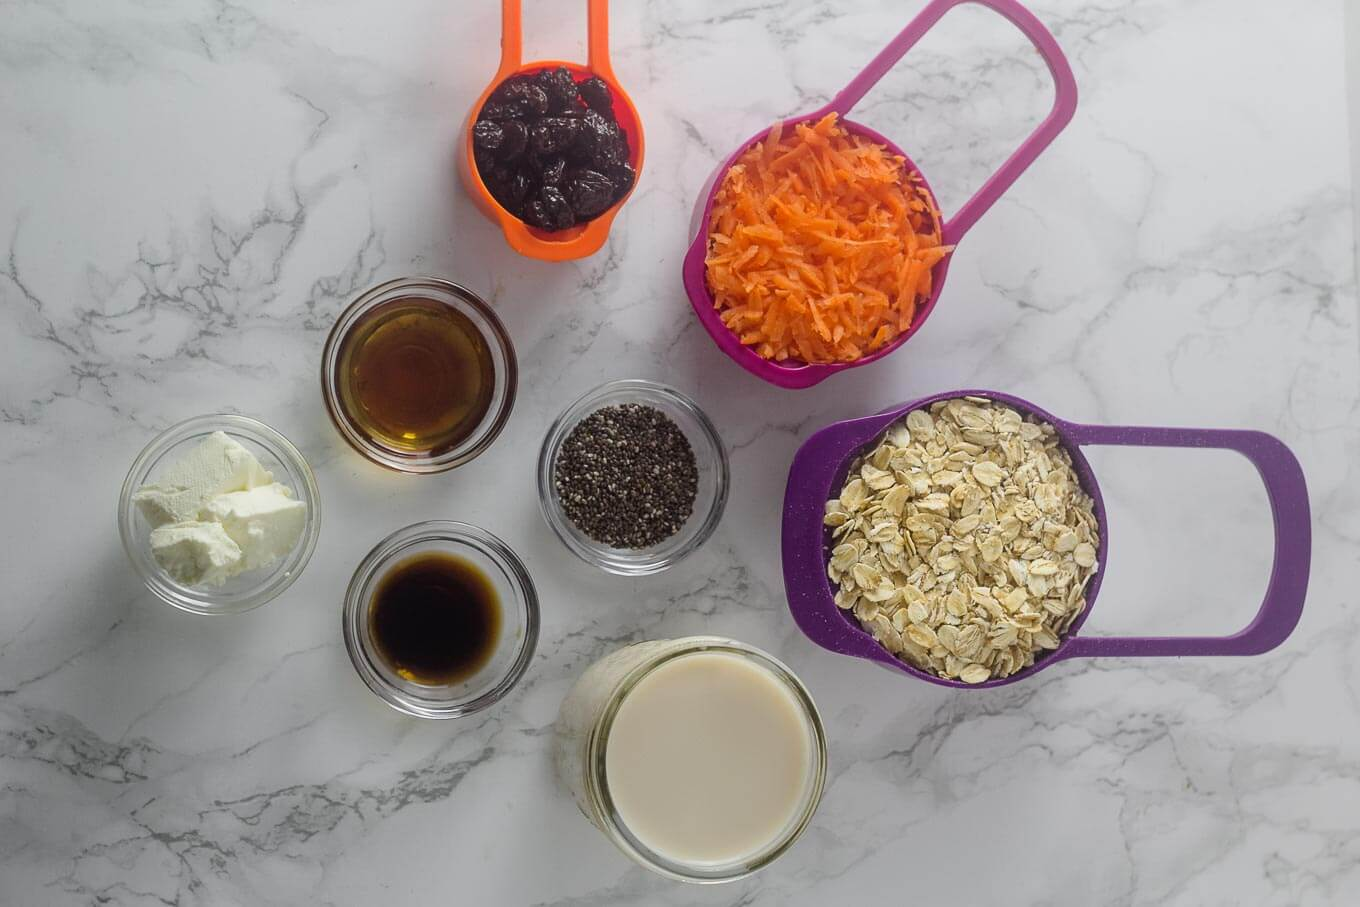 measuring cups with ingredients (oats, carrots, raisins, maple syrup, chia seeds, milk, vanilla extract) in them.